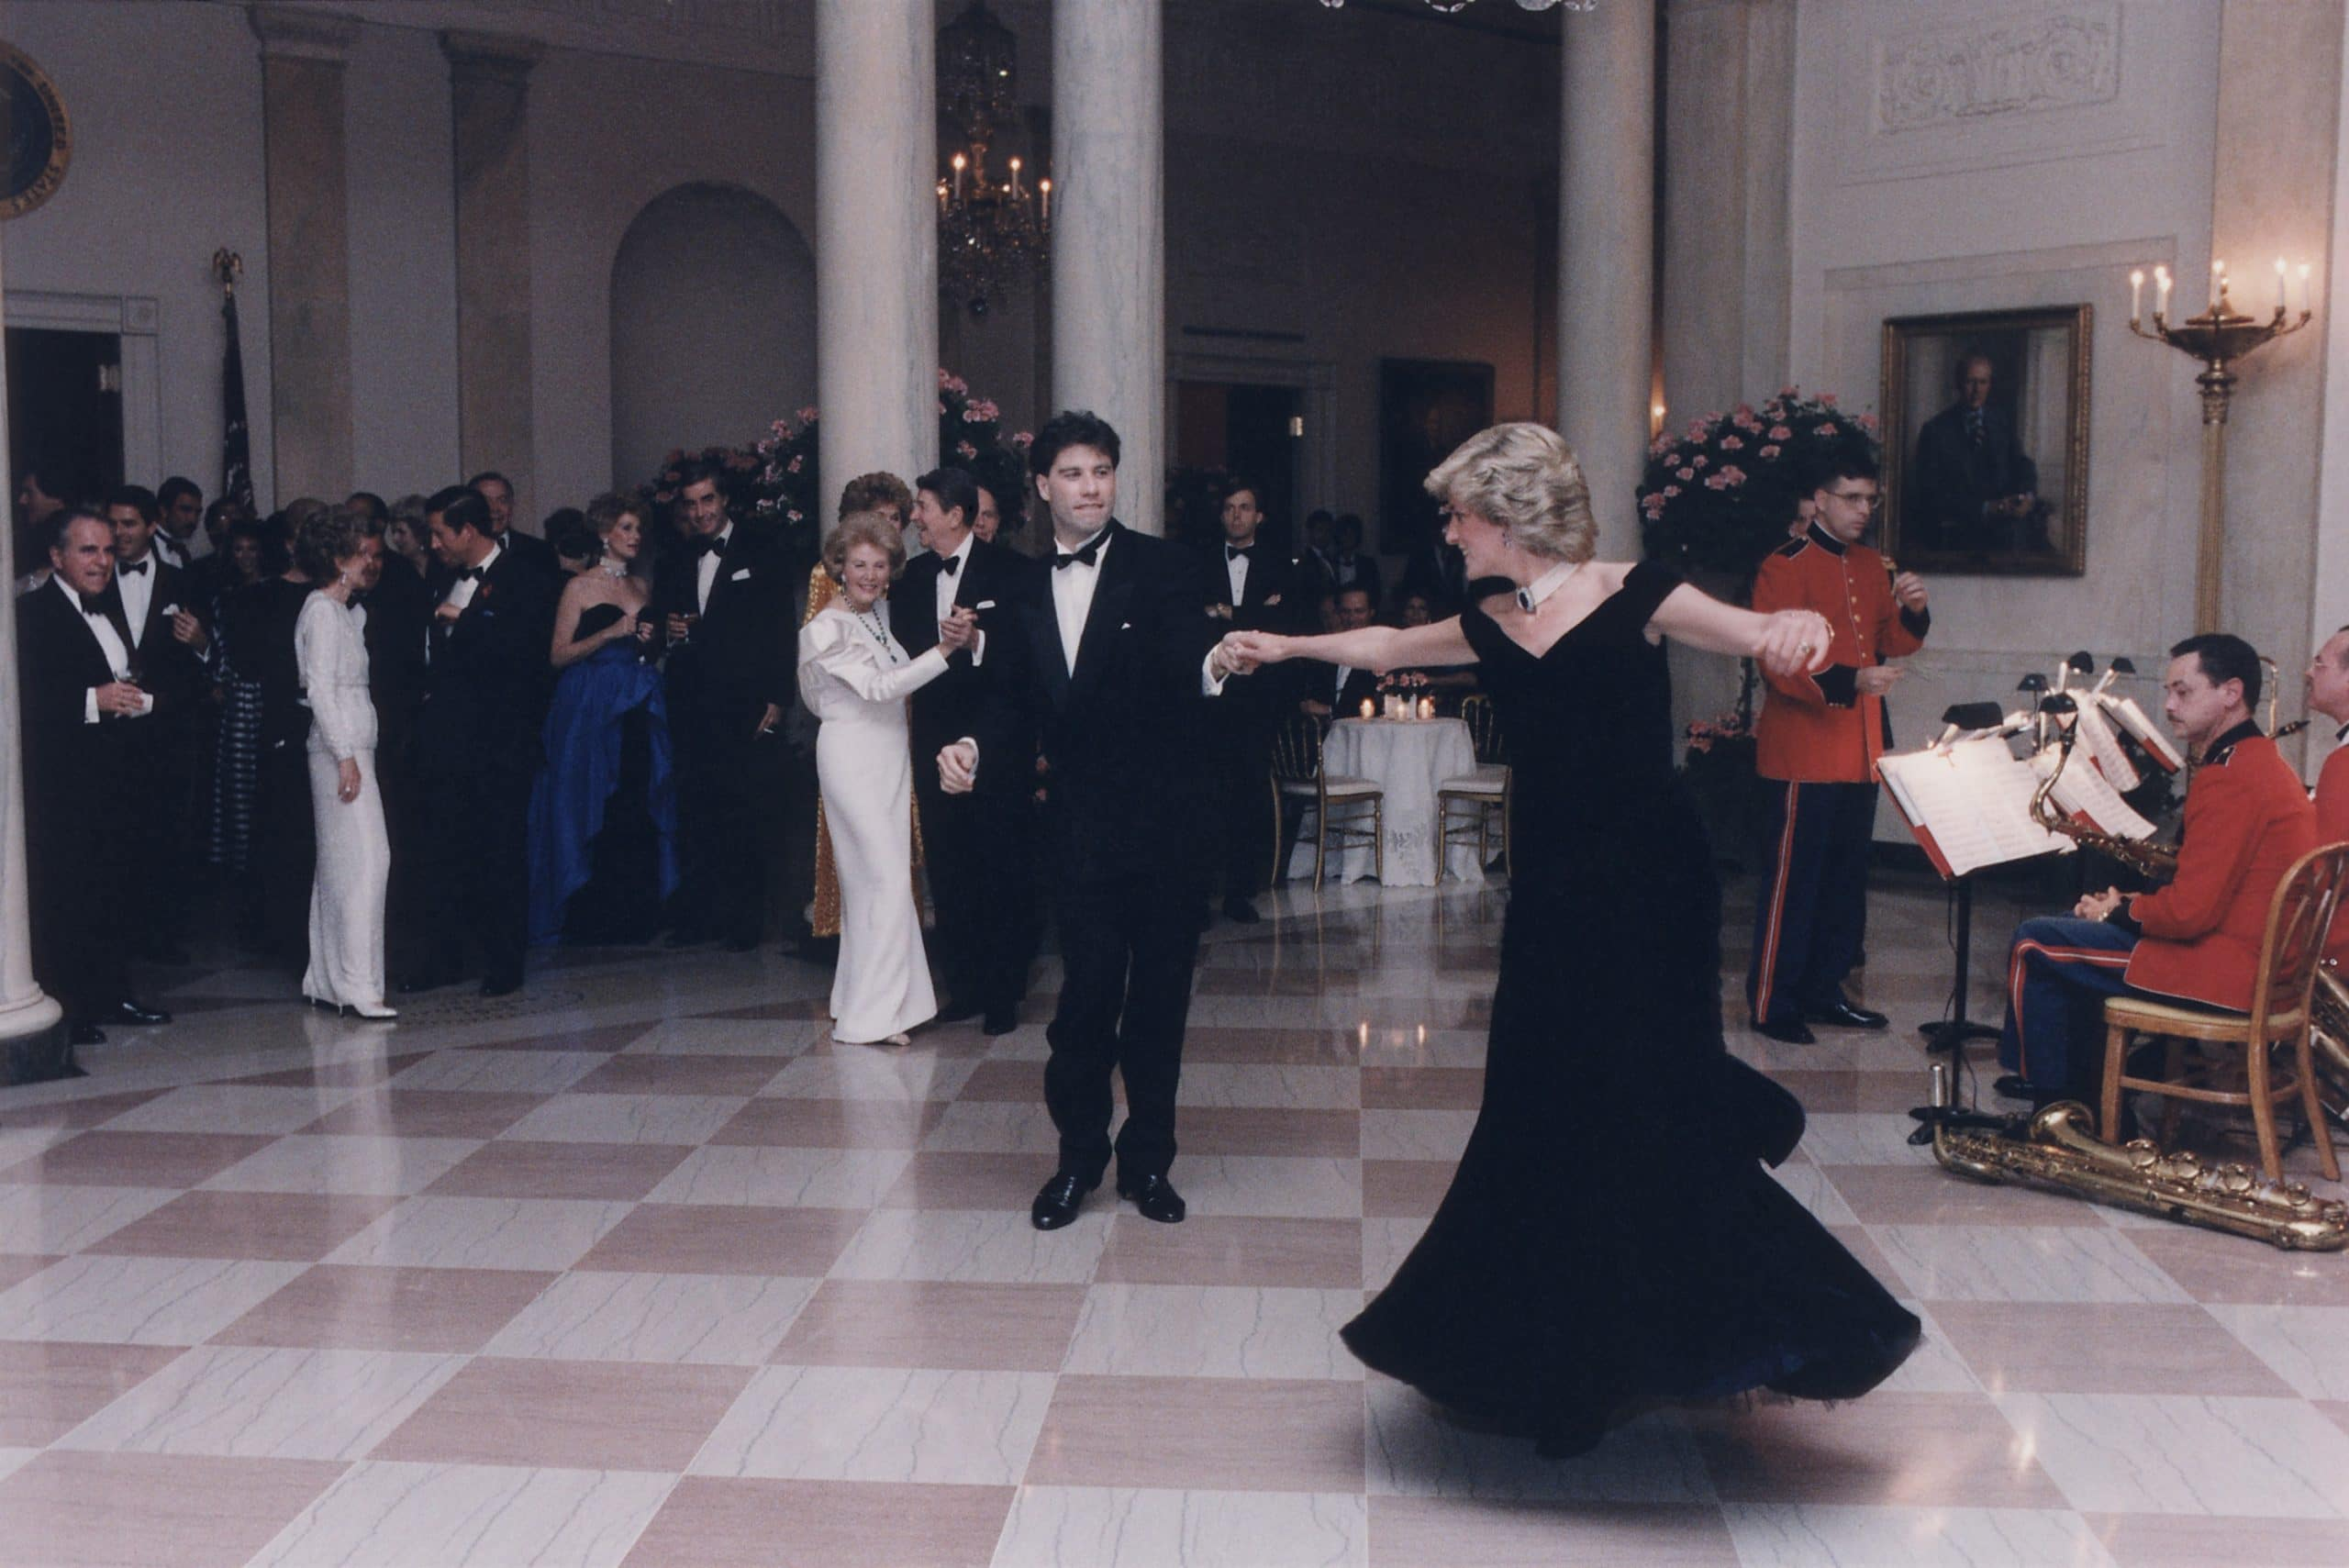 Princess Diana dancing with John Travolta after a White House dinner